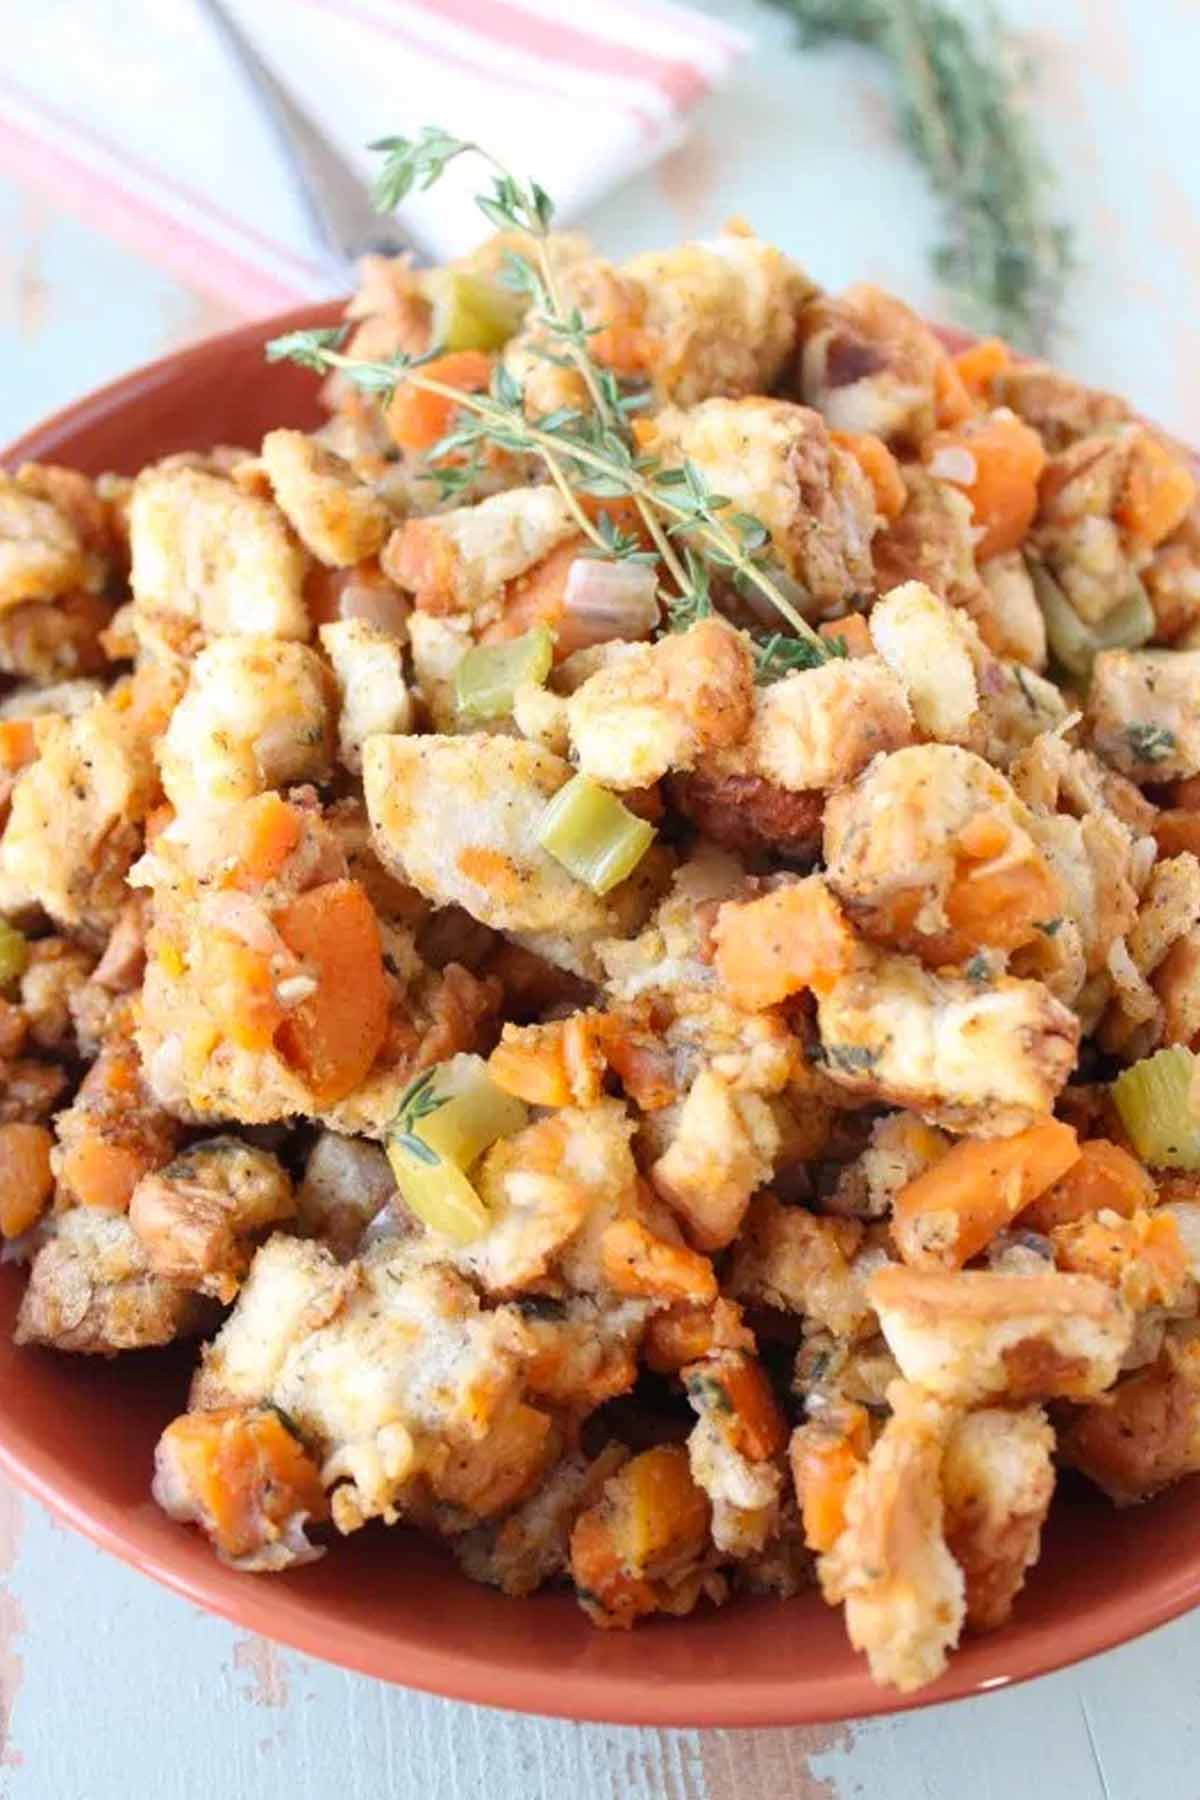 Easy Turkey Stuffing Recipes - Fresh Cranberry Stuffing